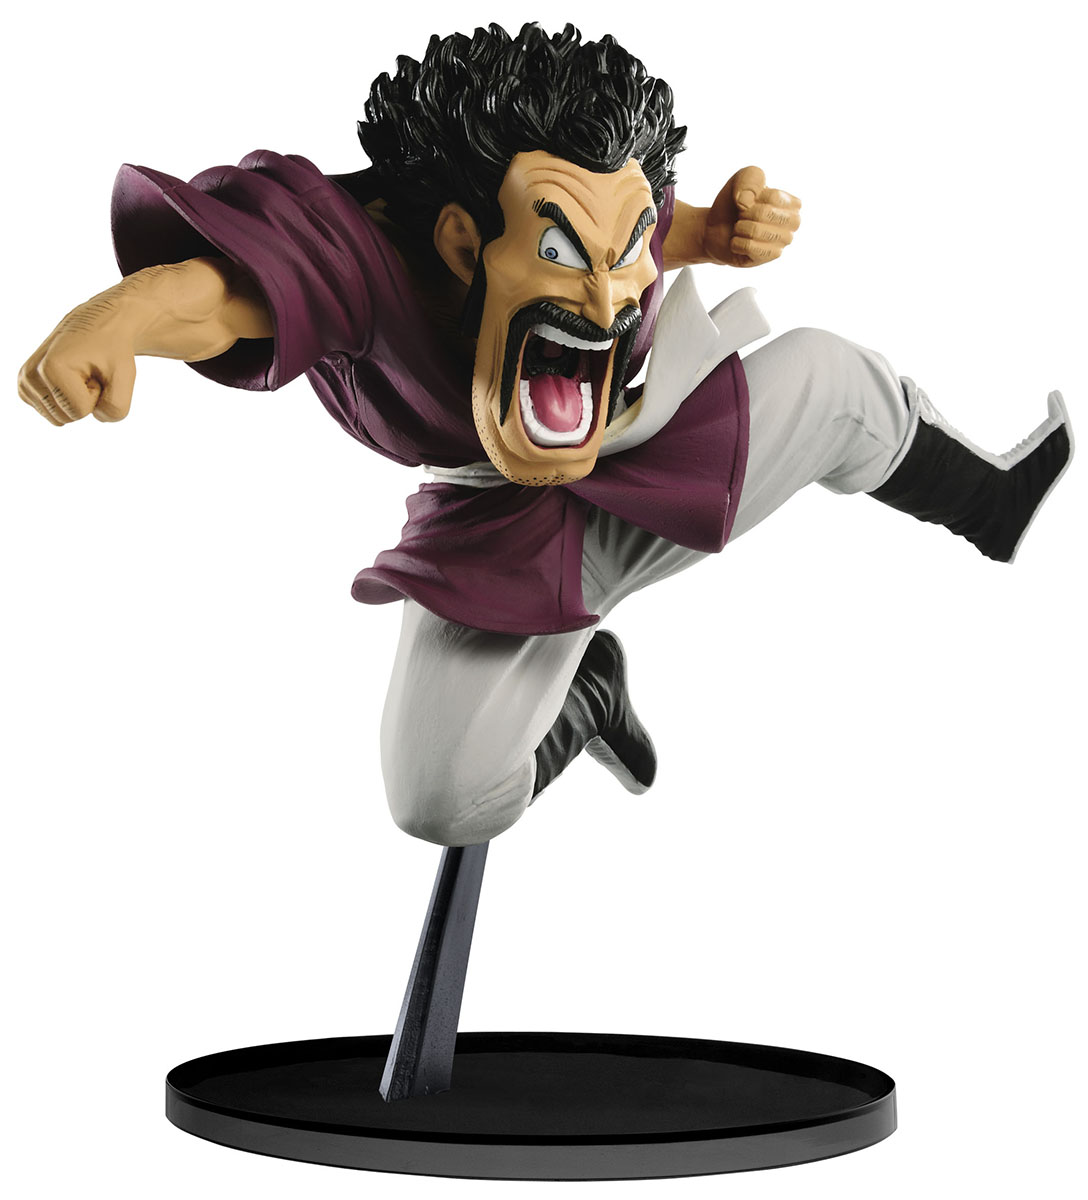 Bandai Фигурка Dbz Big Budoukai 7 Vol.2 Hercule 9 9 см 100% original banpresto big zoukei tenkaichi budoukai 3 vol 4 collection figure son goku from dragon ball